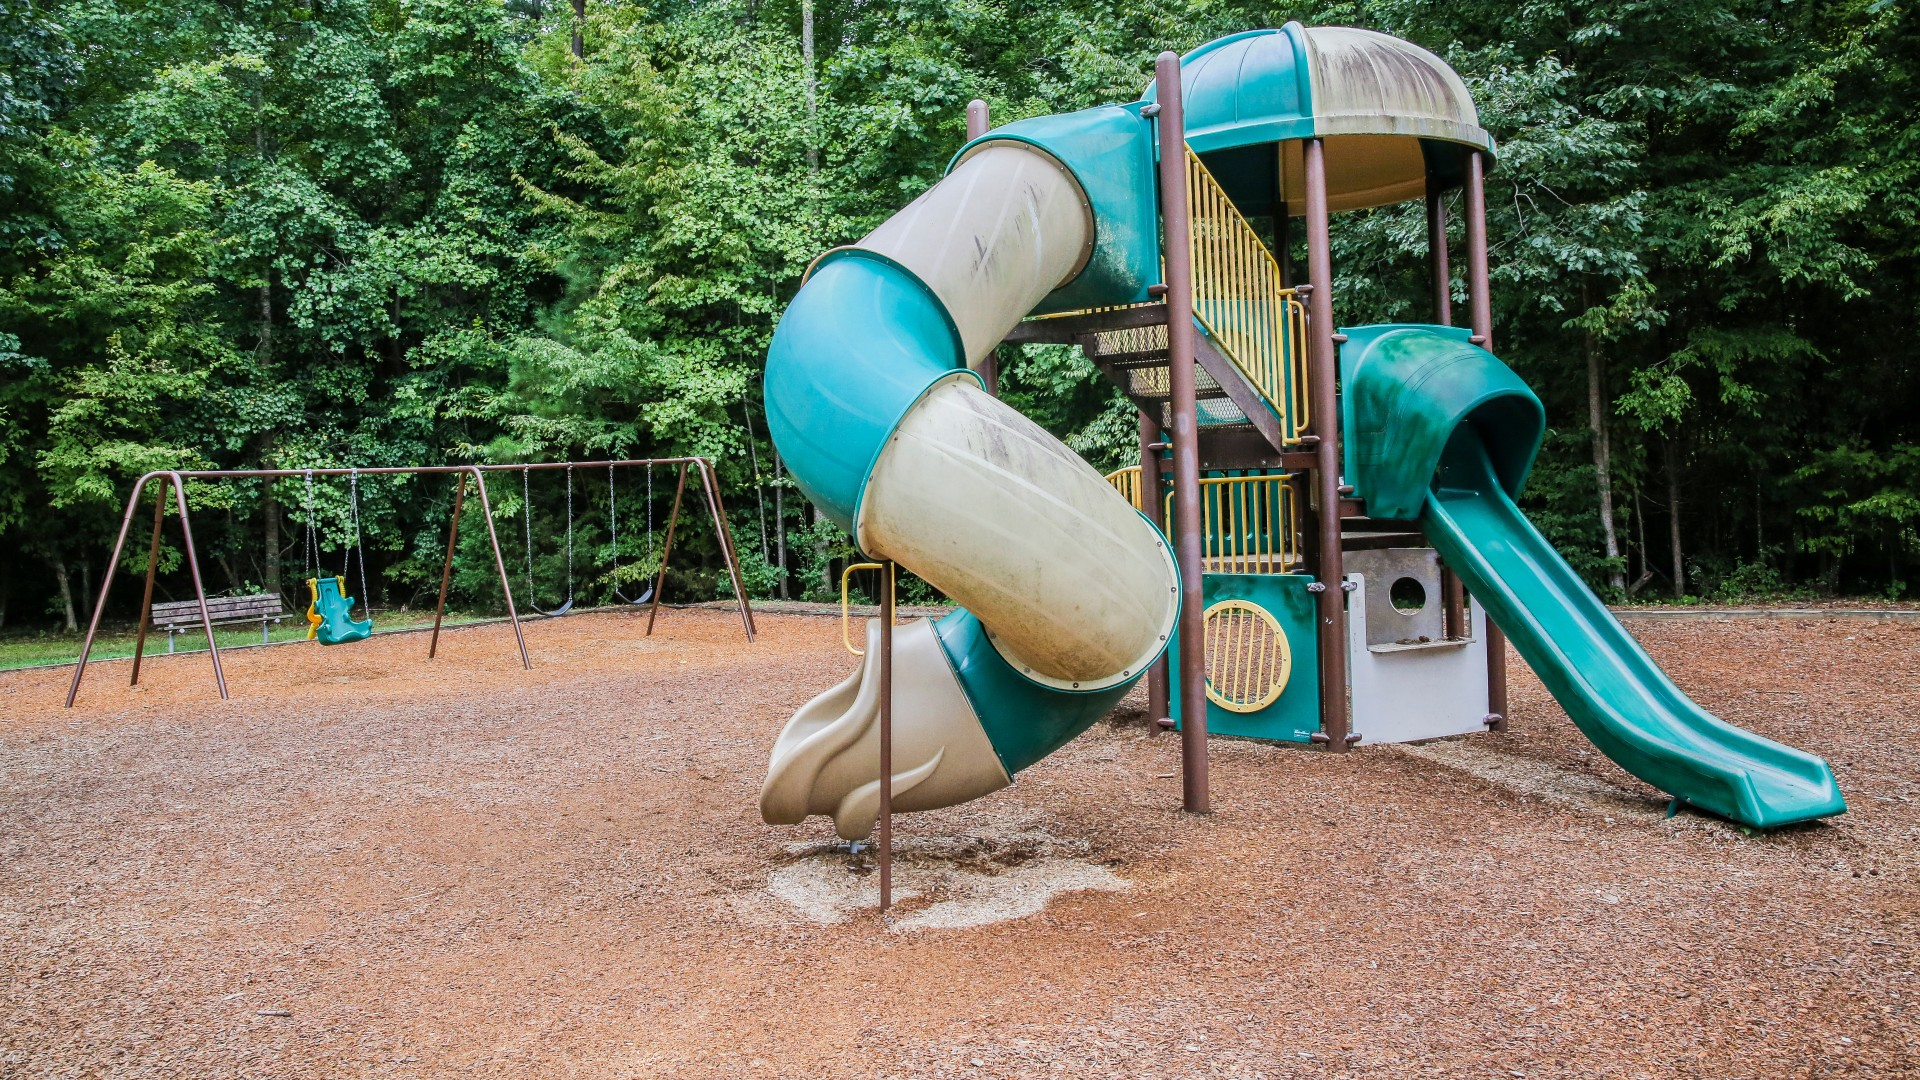 A second larger playground for older kids